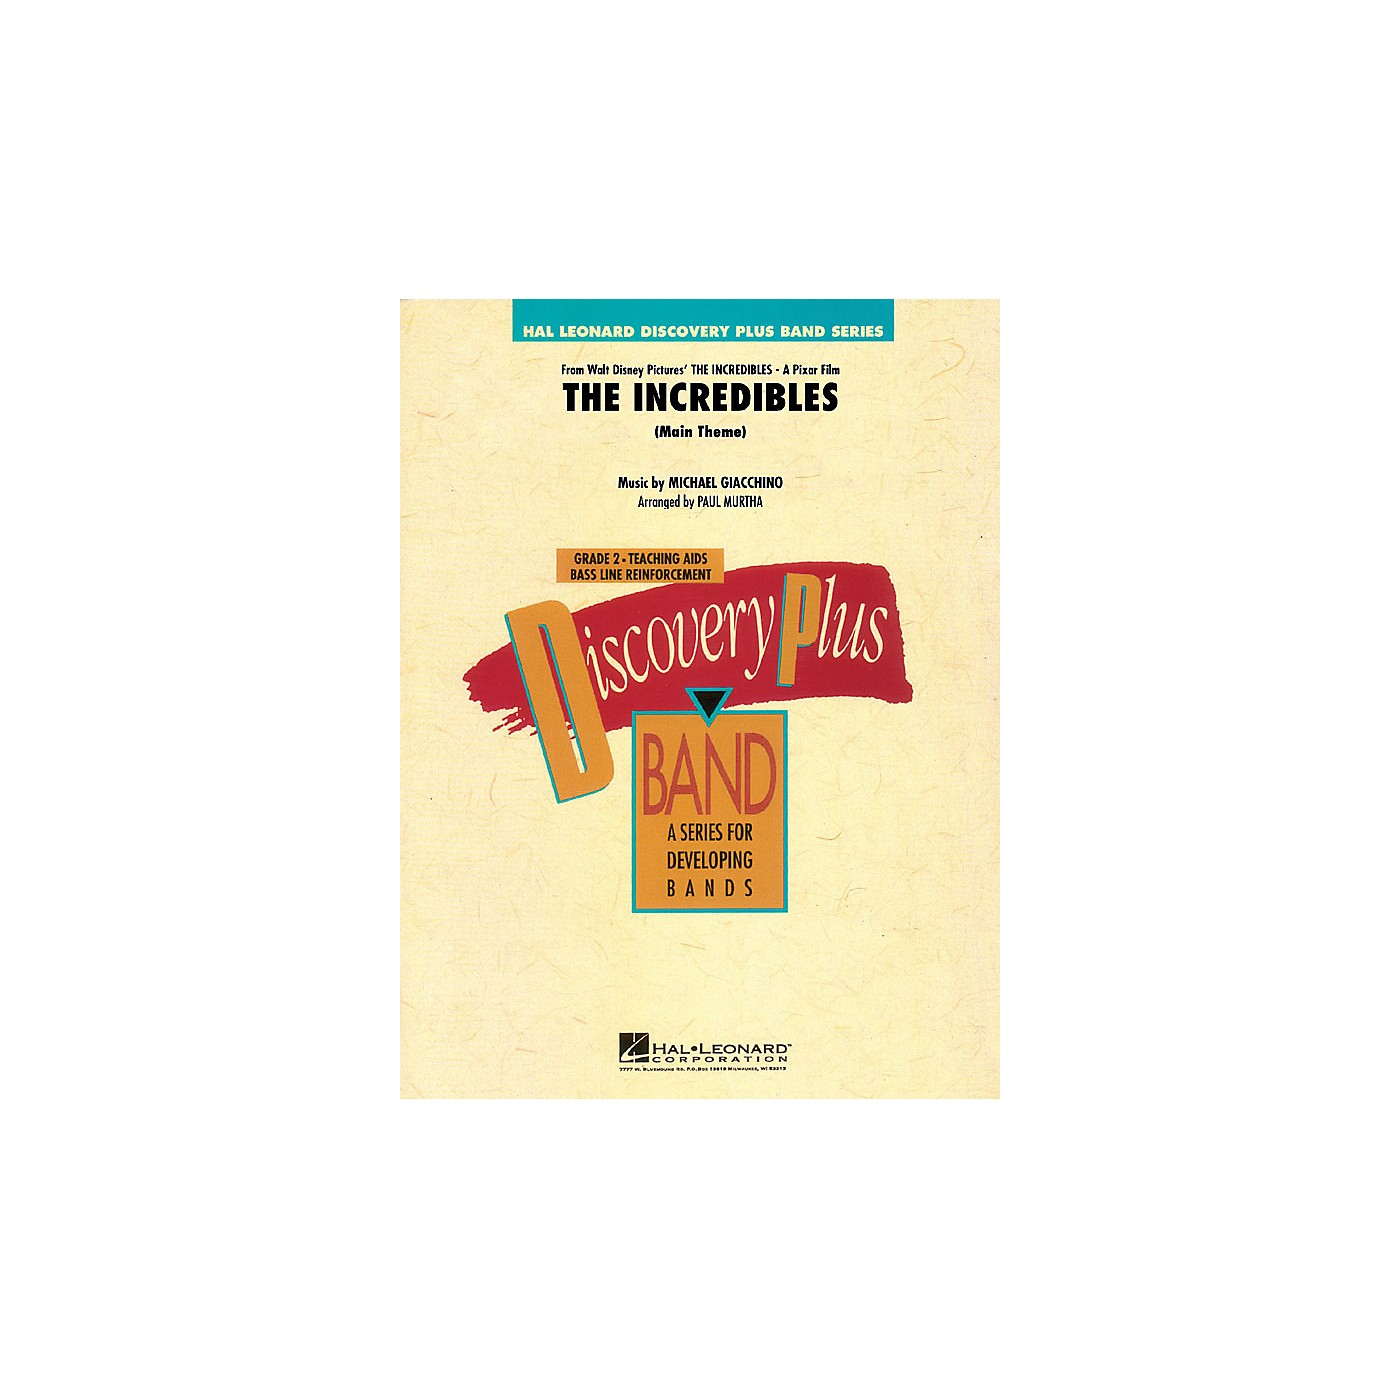 Hal Leonard The Incredibles (Main Theme) - Discovery Plus Concert Band Series Level 2 arranged by Paul Murtha thumbnail